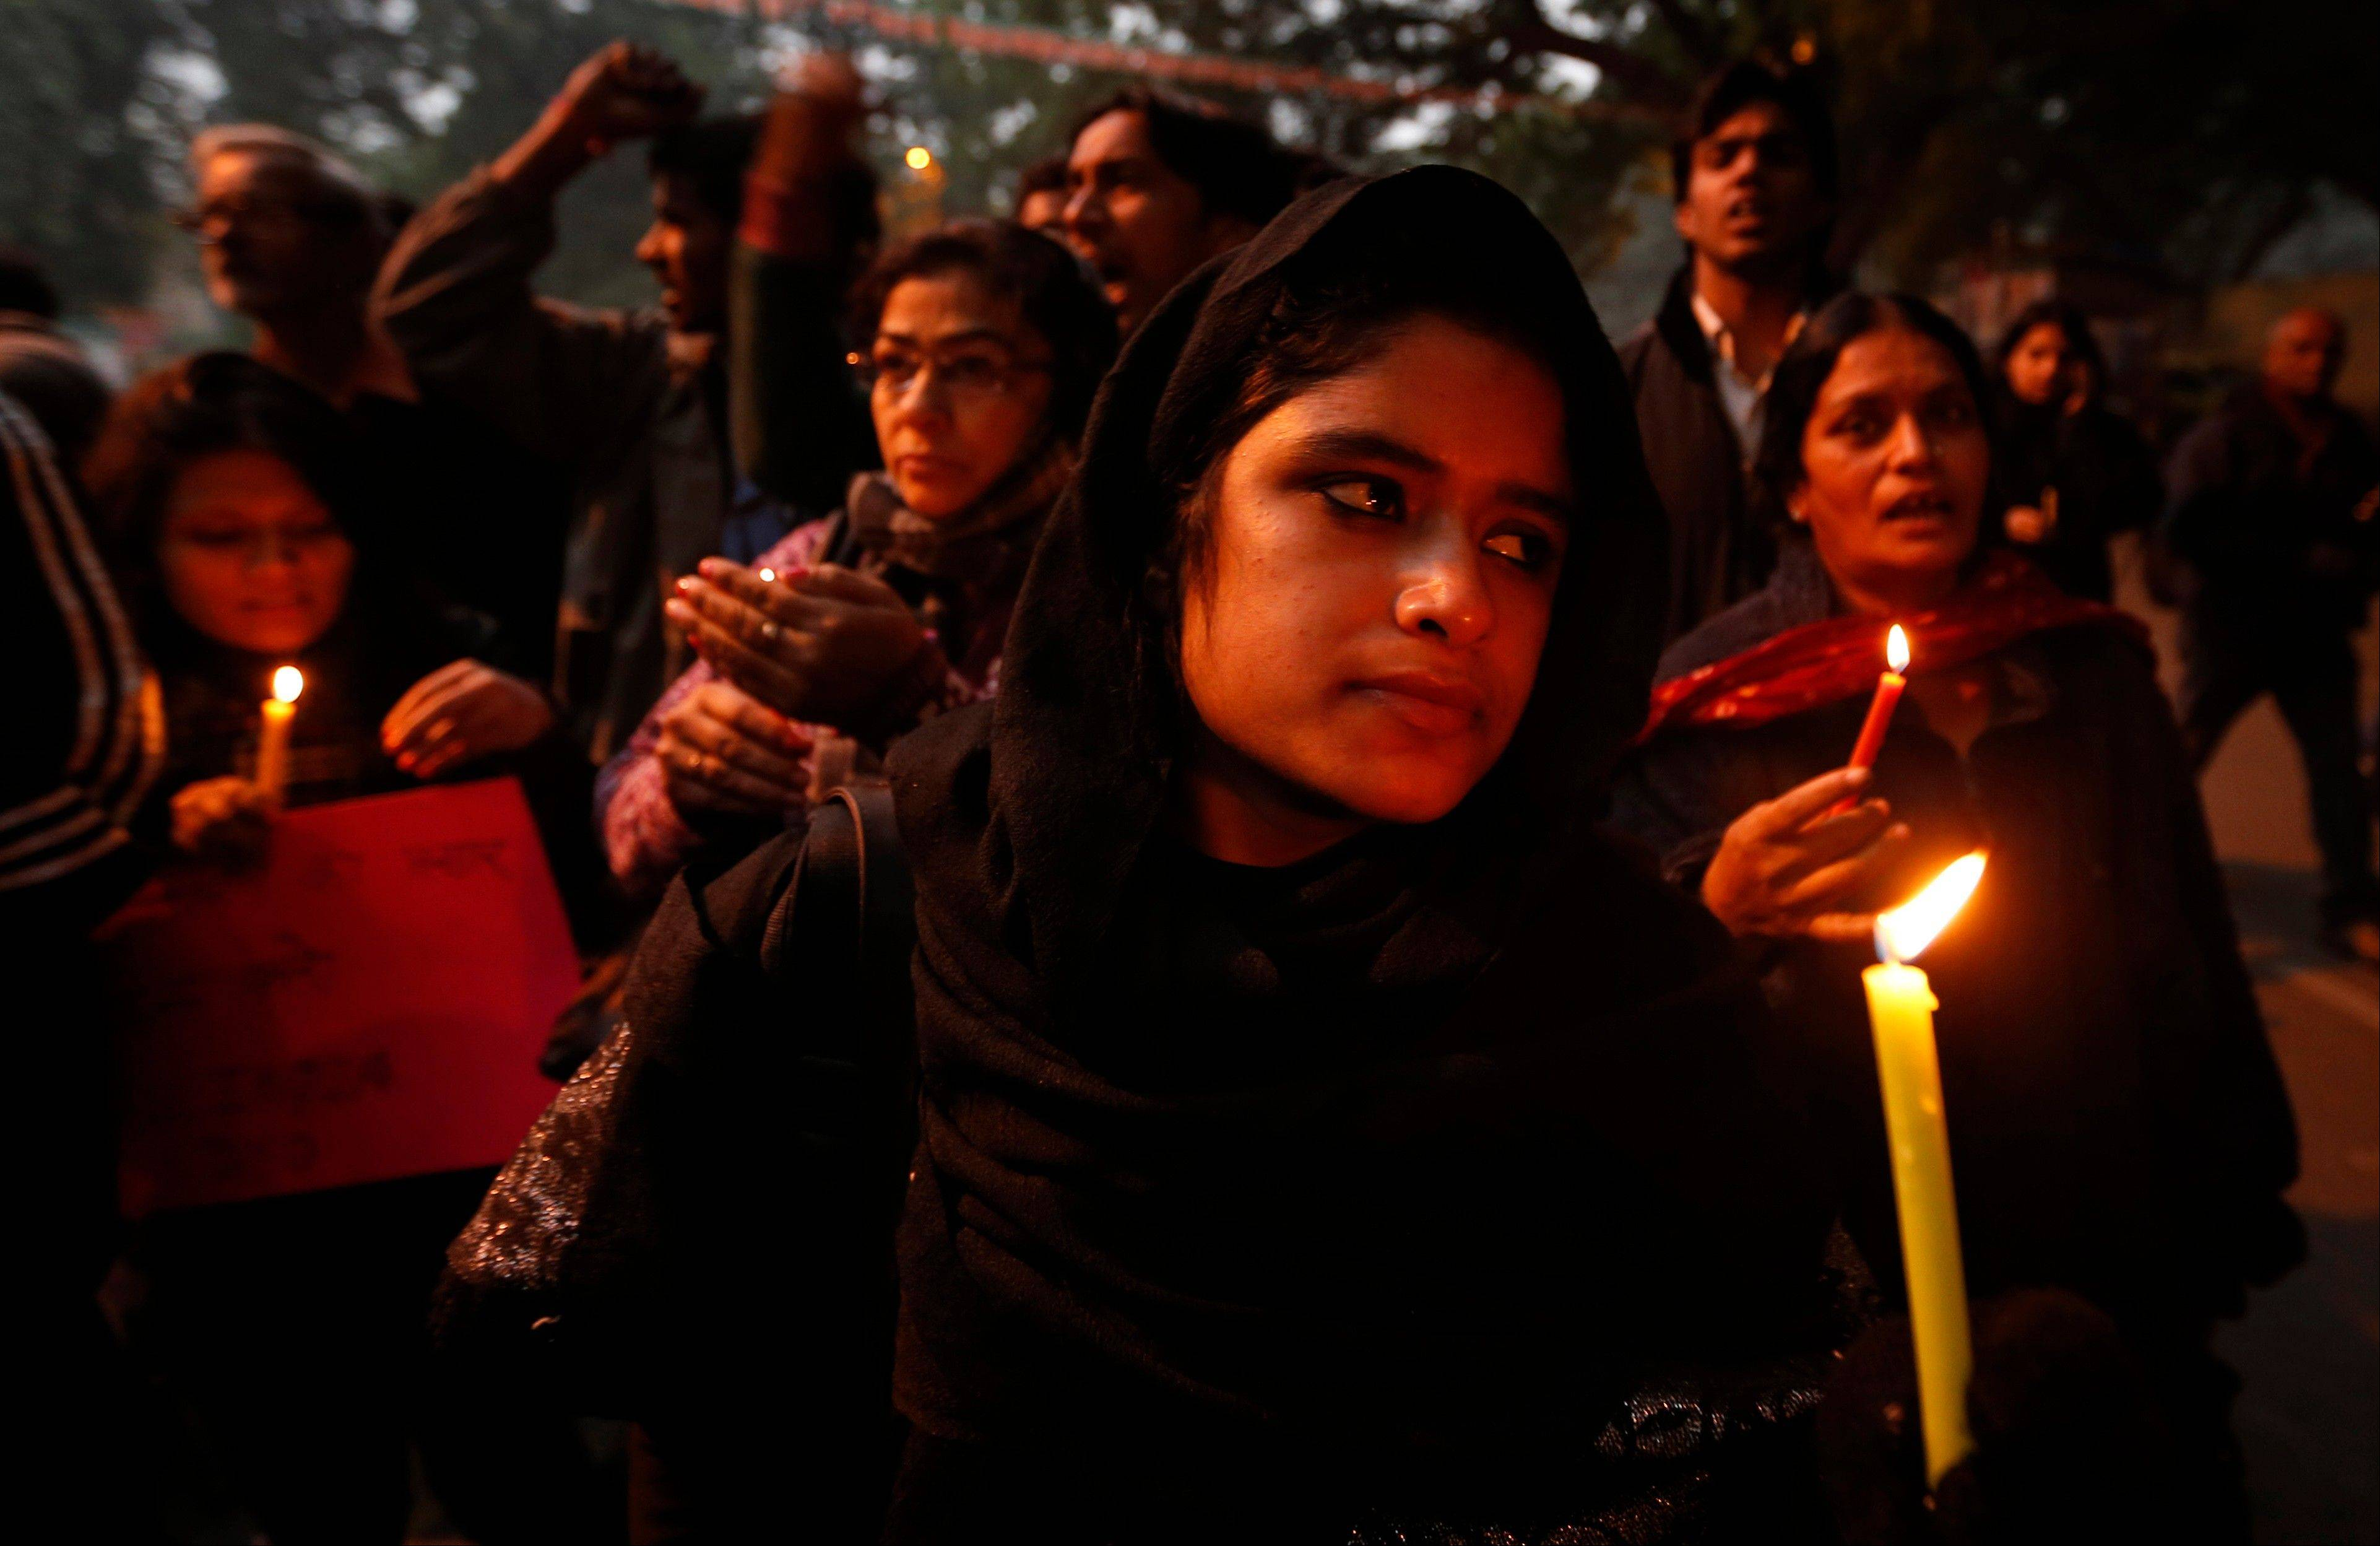 Indians participate Wednesday in a candle light vigil to seek a quick recovery of the young victim of the recent brutal gang-rape in a bus in New Delhi, India. A statement by Singapore�s Mount Elizabeth hospital, where the 23-year-old victim was being treated, said she died Saturday.